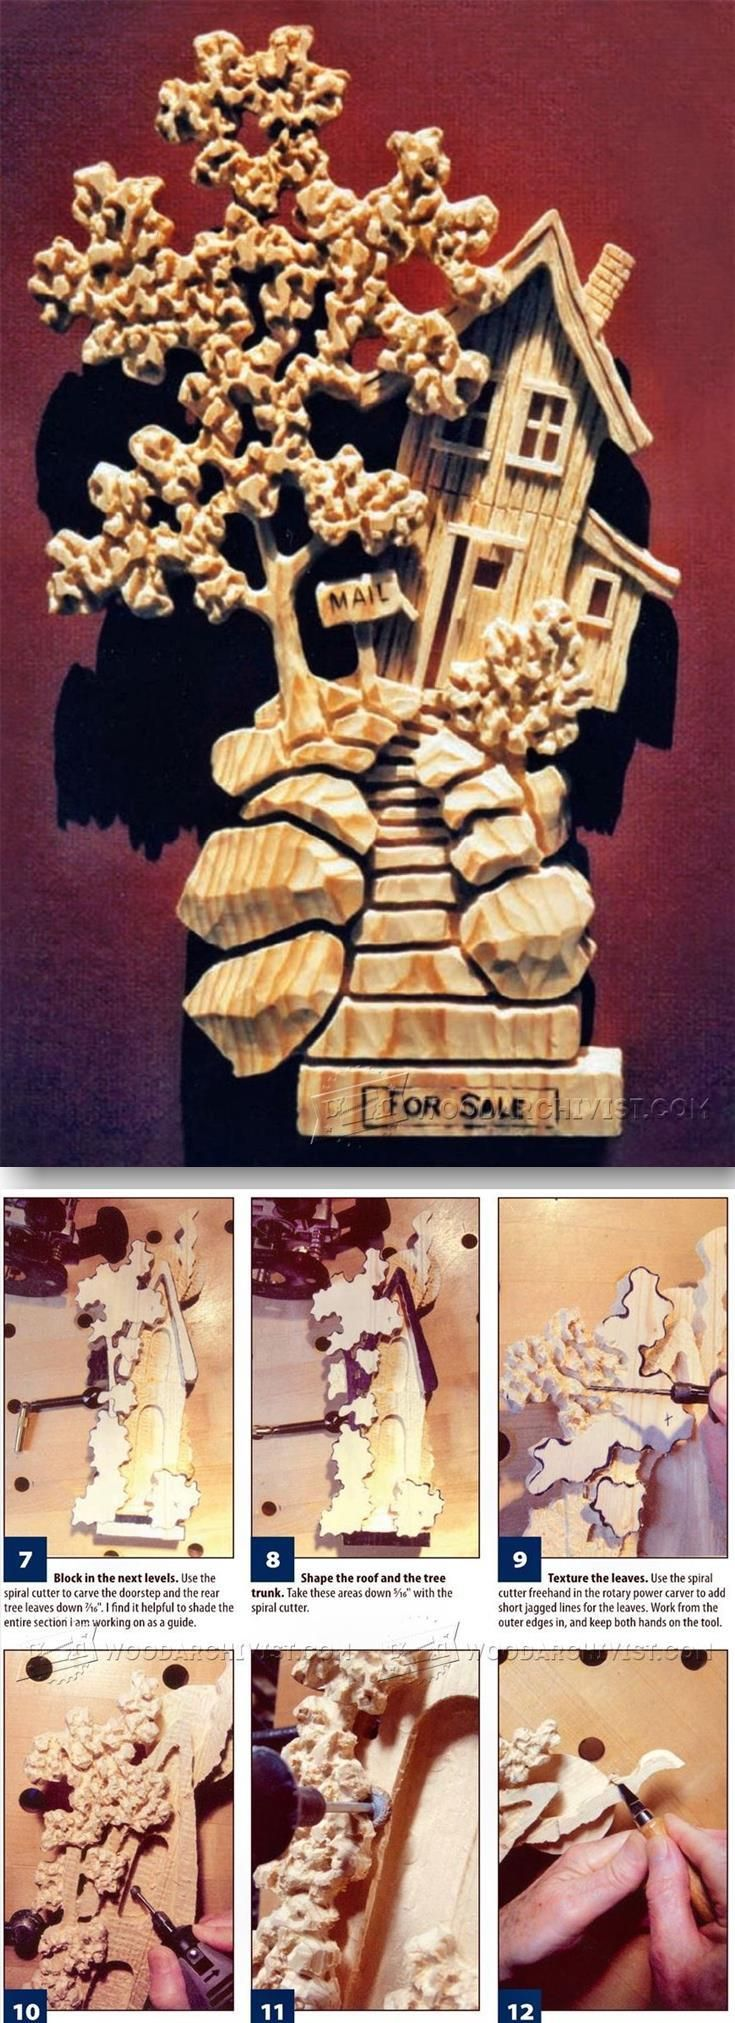 Best images about carvings on pinterest wood working